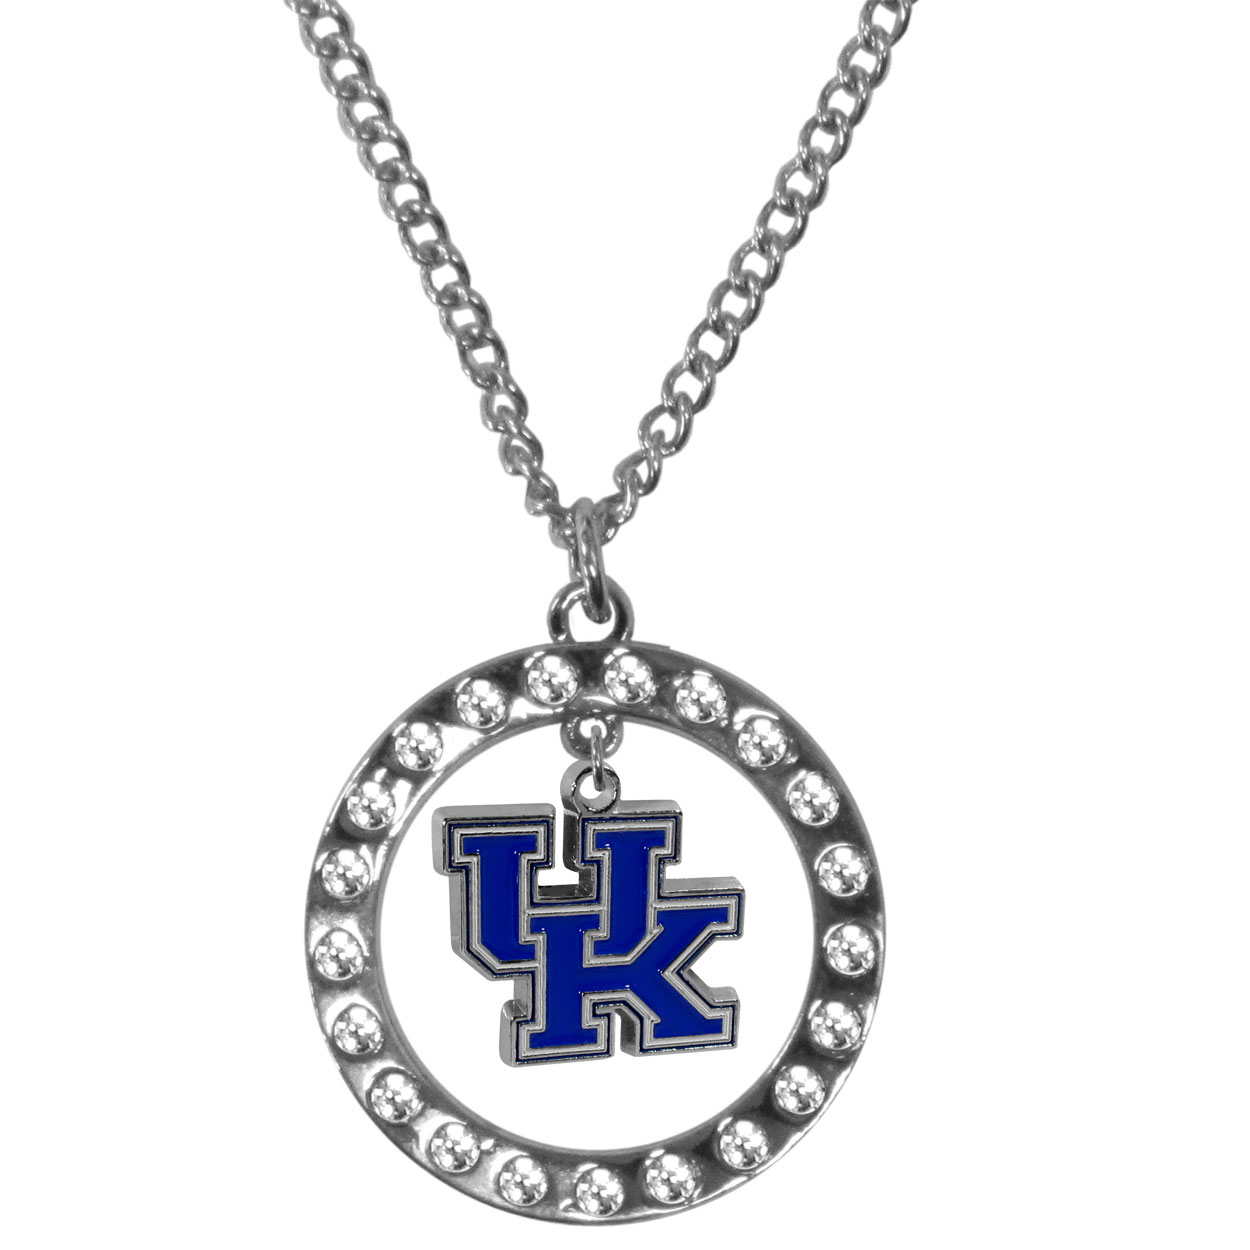 Kentucky Wildcats Rhinestone Hoop Necklaces - Our Kentucky Wildcats rhinestone hoop necklace comes on an 18 inch chain and features a hoop covered in rhinestones with a high polish chrome finish and a cast and enameled team charm dangling in the center.